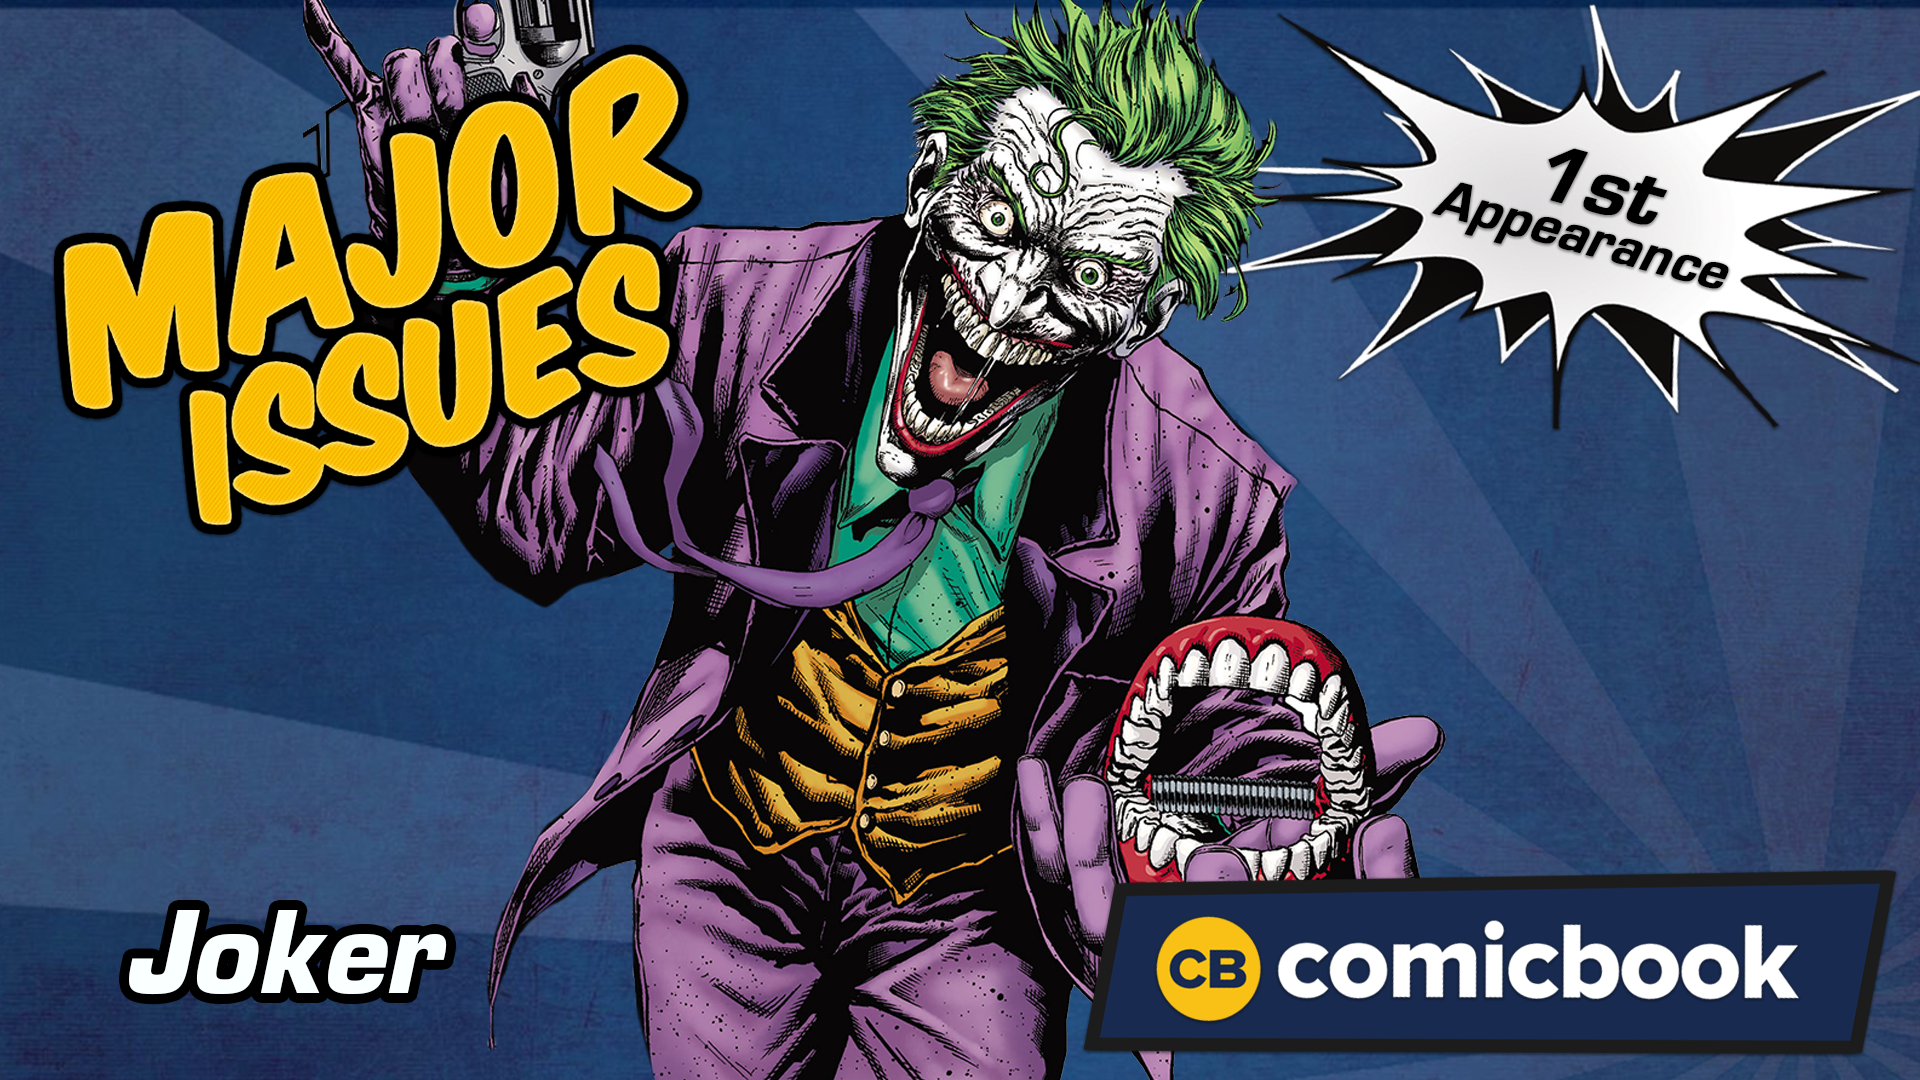 The Joker's First Appearance - Major Issues screen capture